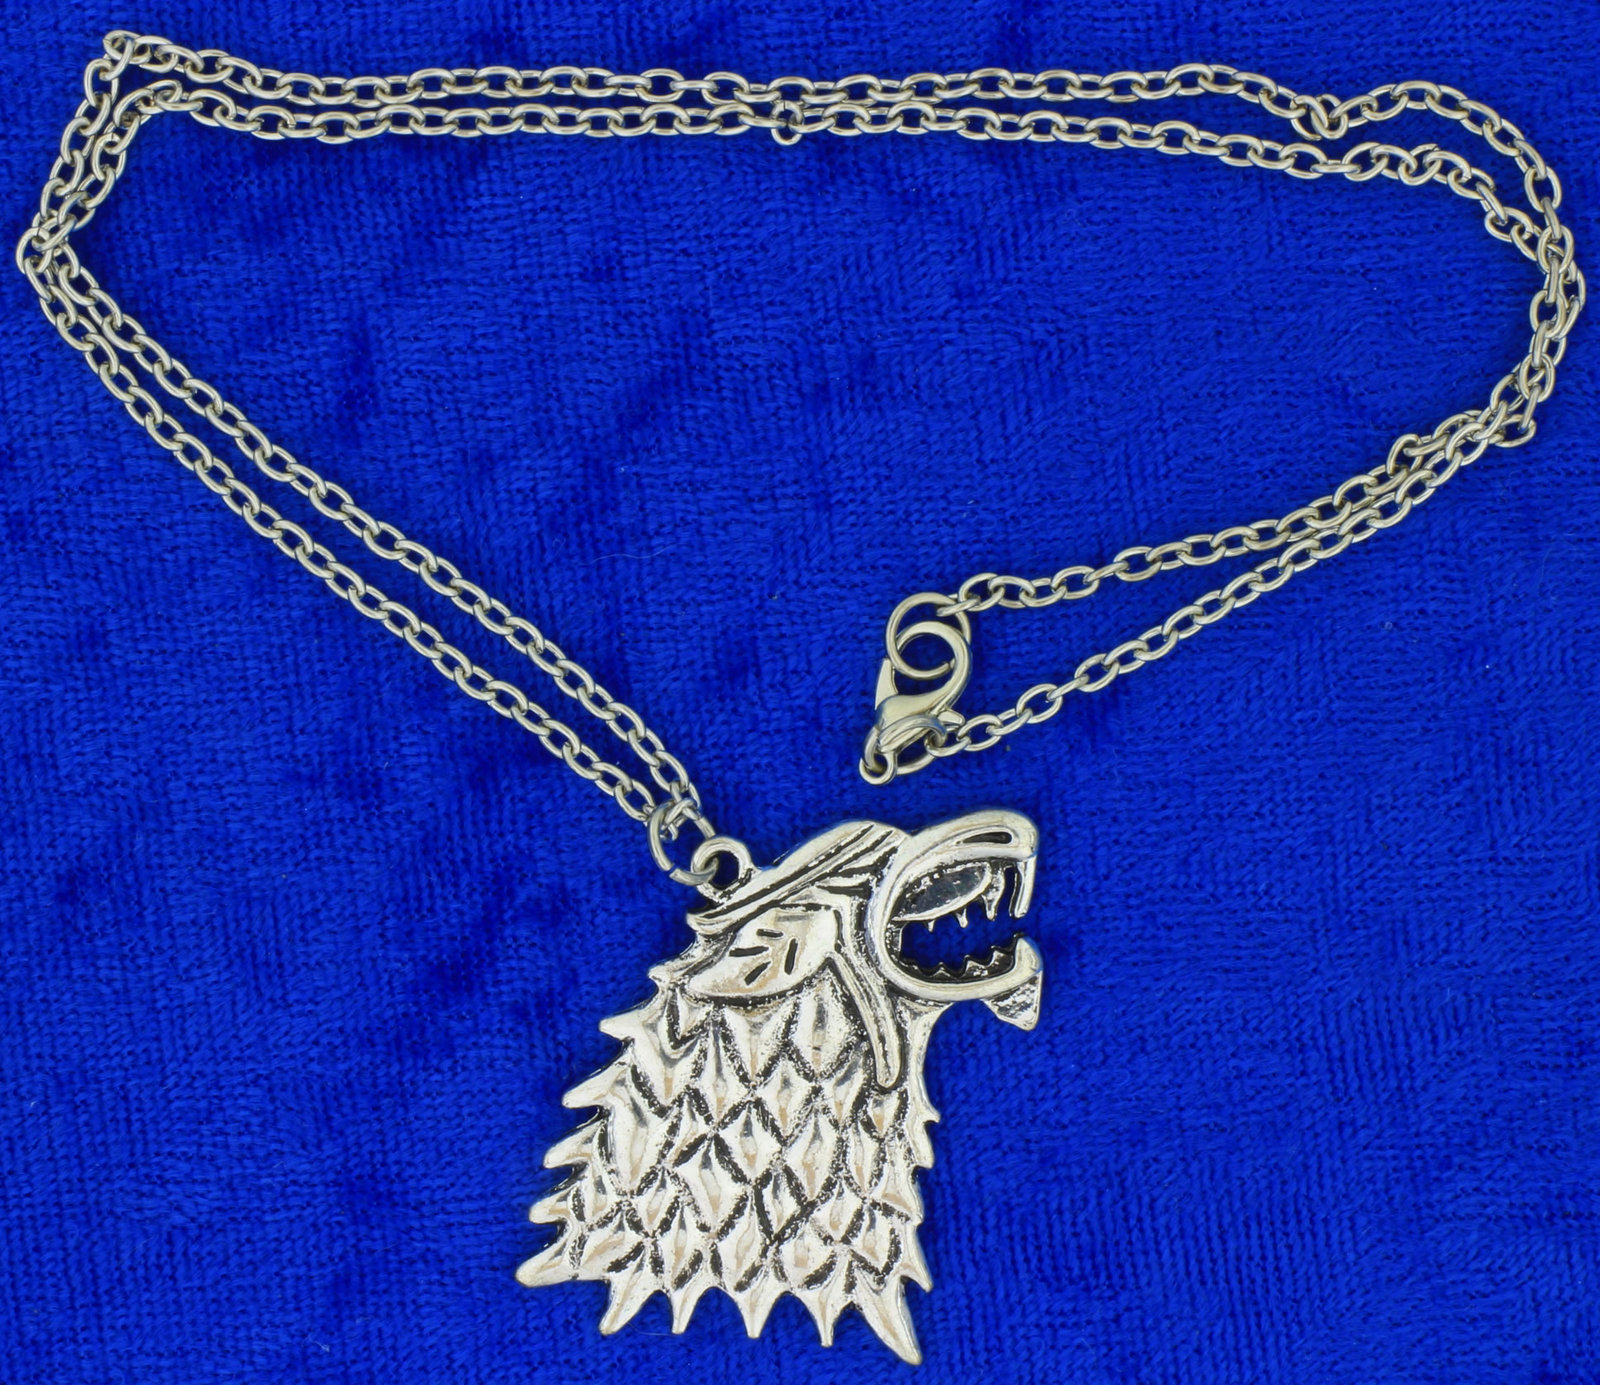 Stark Direwolf Necklace Game of Thrones Wolf Head Chain Style Length Choice